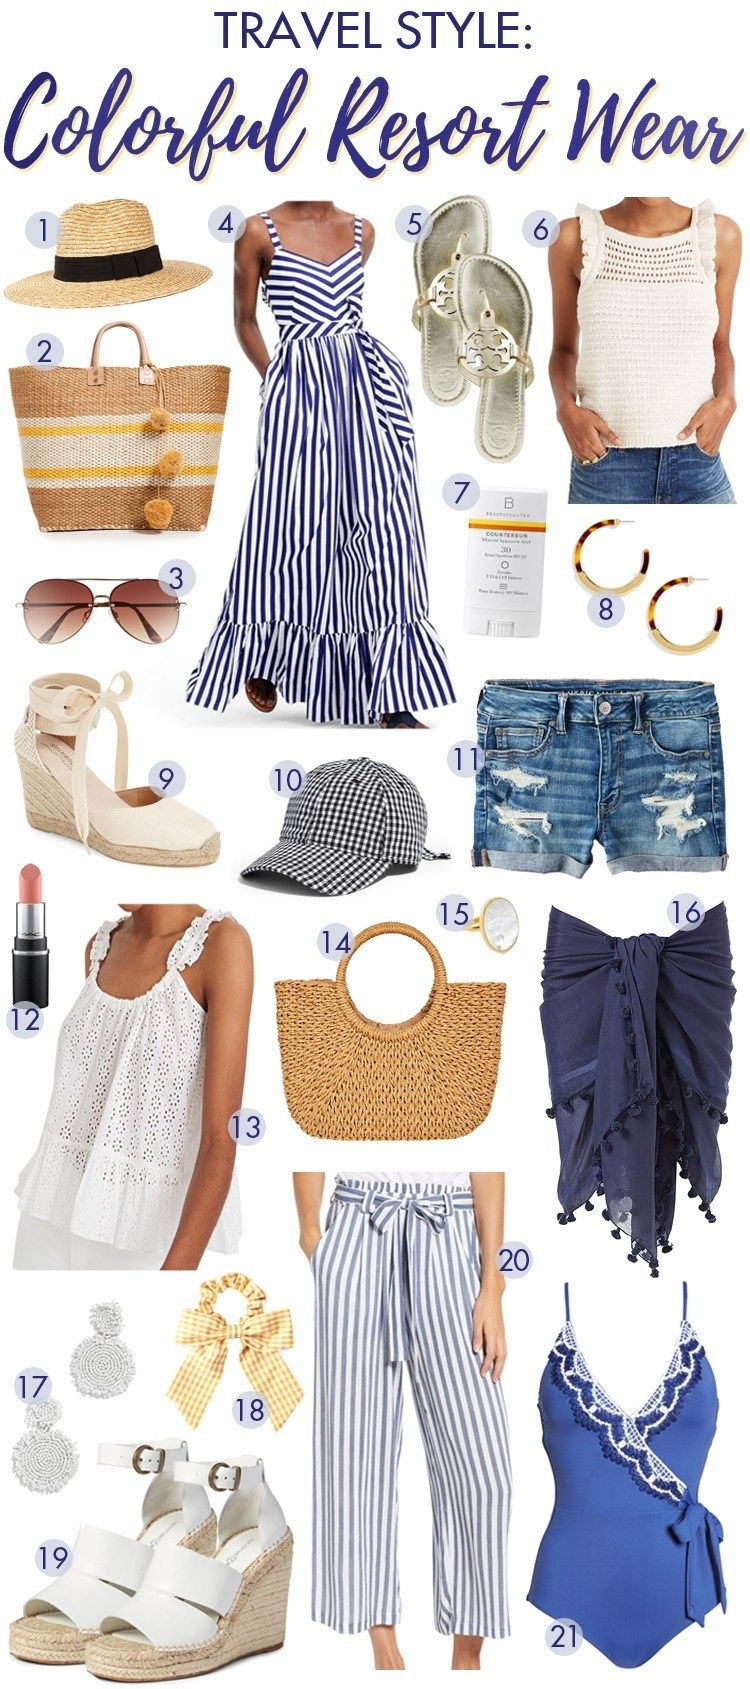 Travel Style: Colorful Resort Wear